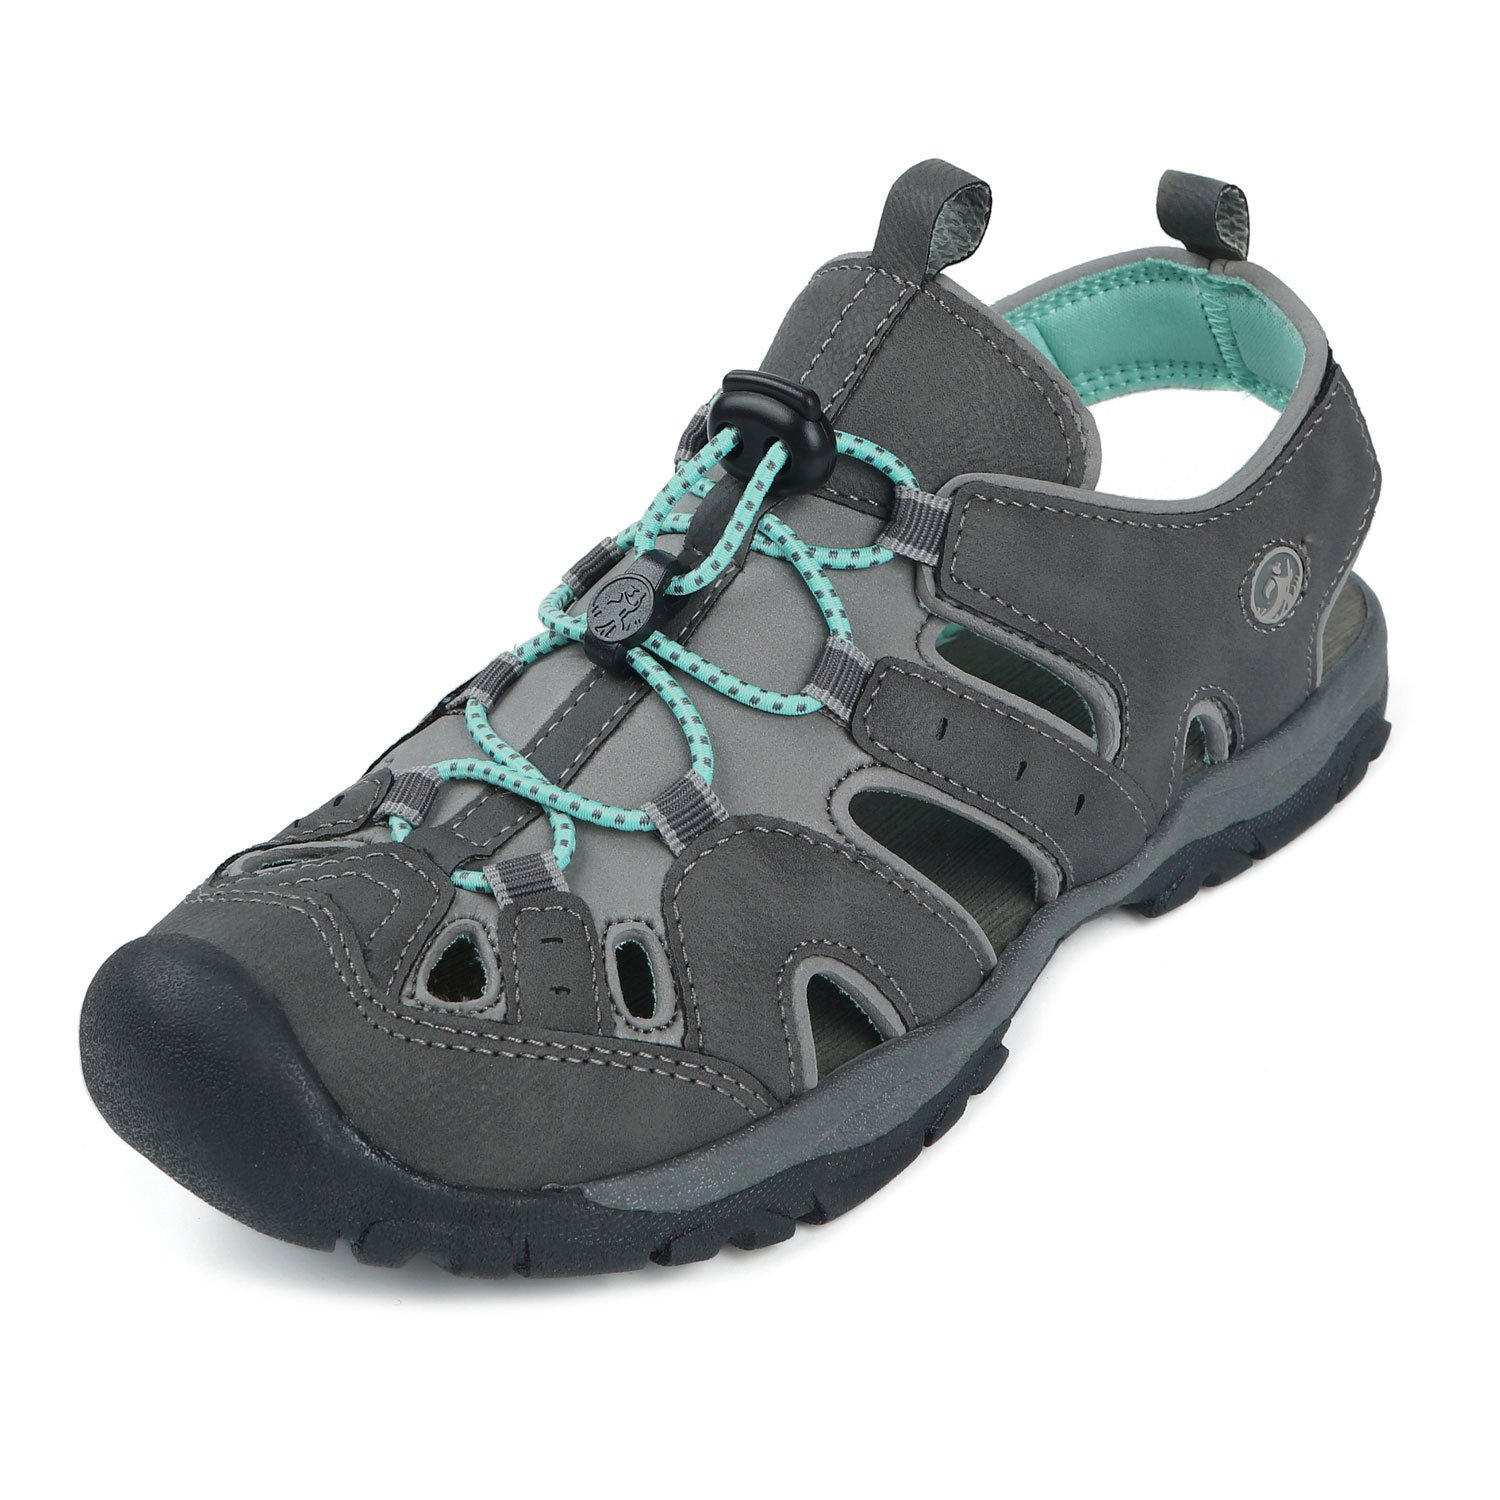 Northside Womens Burke II Sport Athletic Sandal B0151AB1EW 6 B(M) US|Dark Gray/Aqua